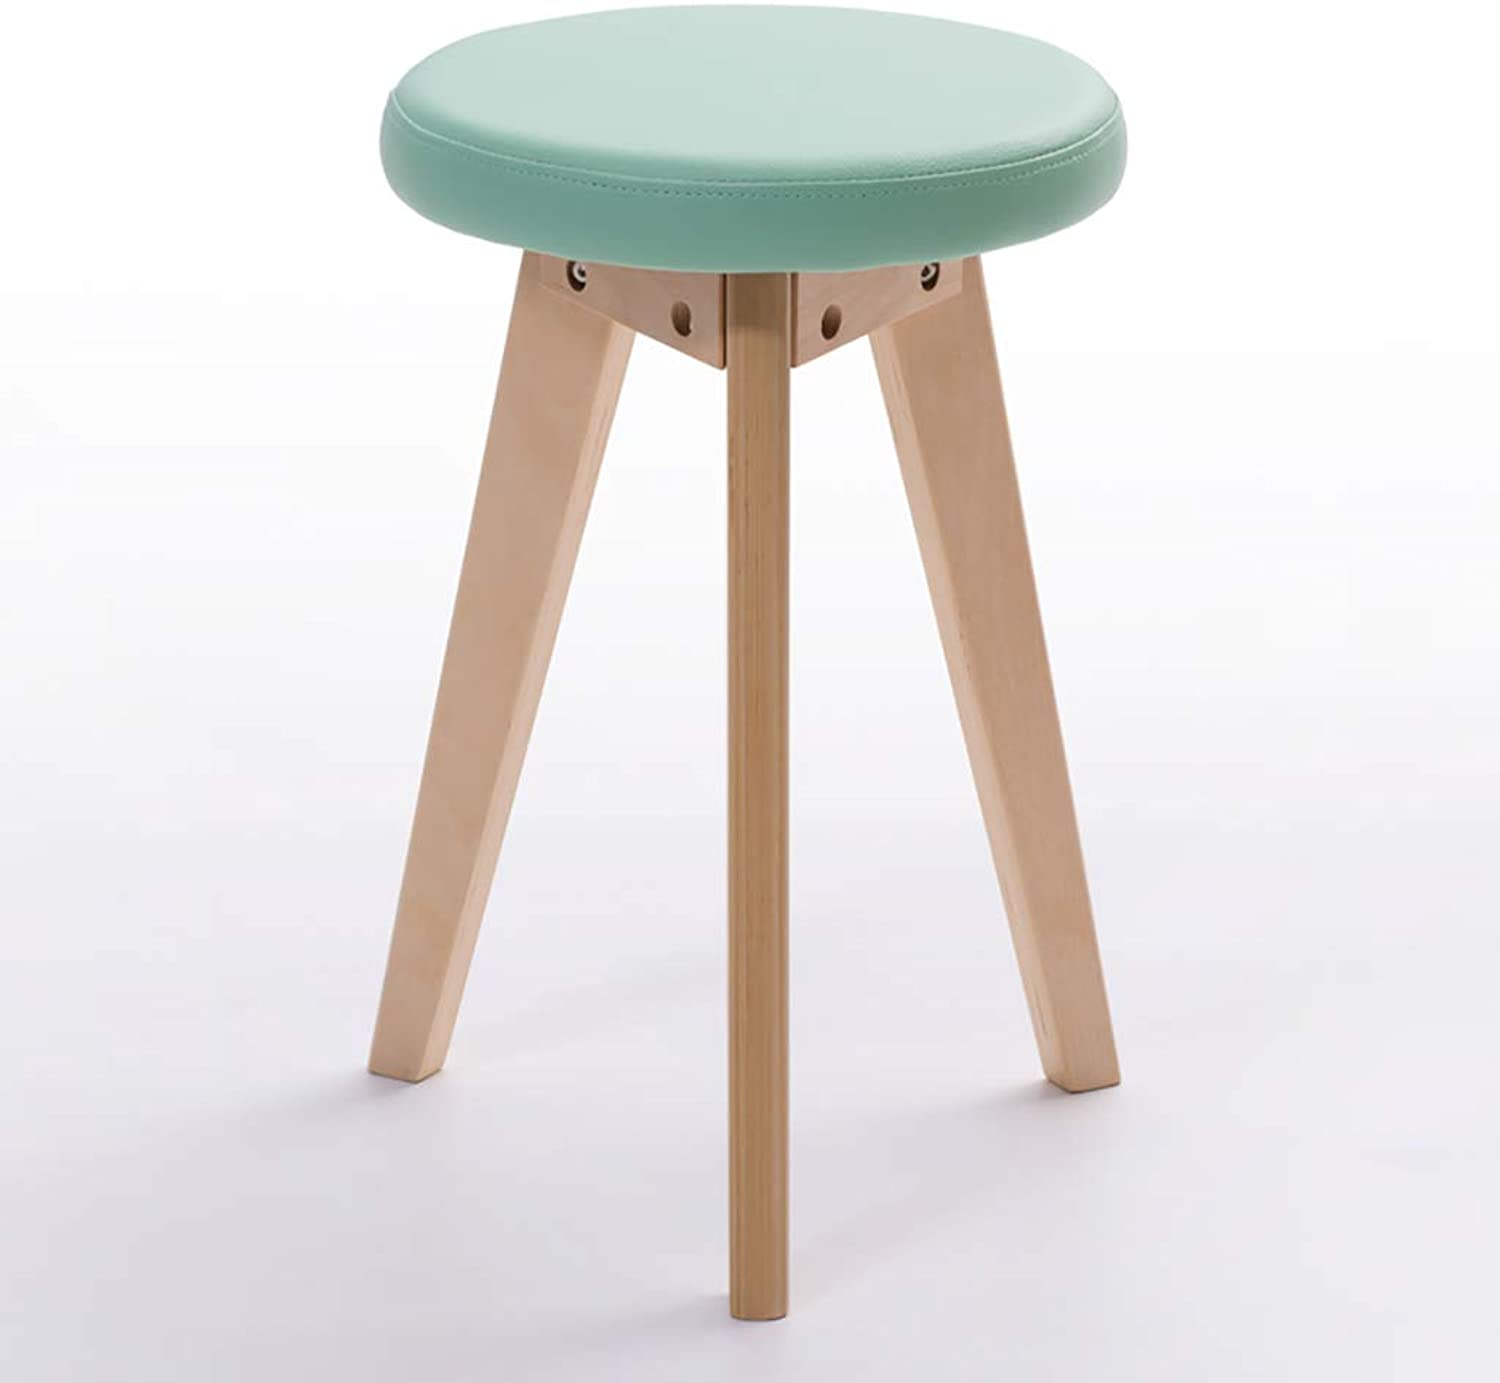 YANYUBIN Solid Wood Stool,Low Stool,Table and Stool,Changing His shoes Stool,Small Bench,Can Be Used for Changing shoes and Dining Stools (color   Green)